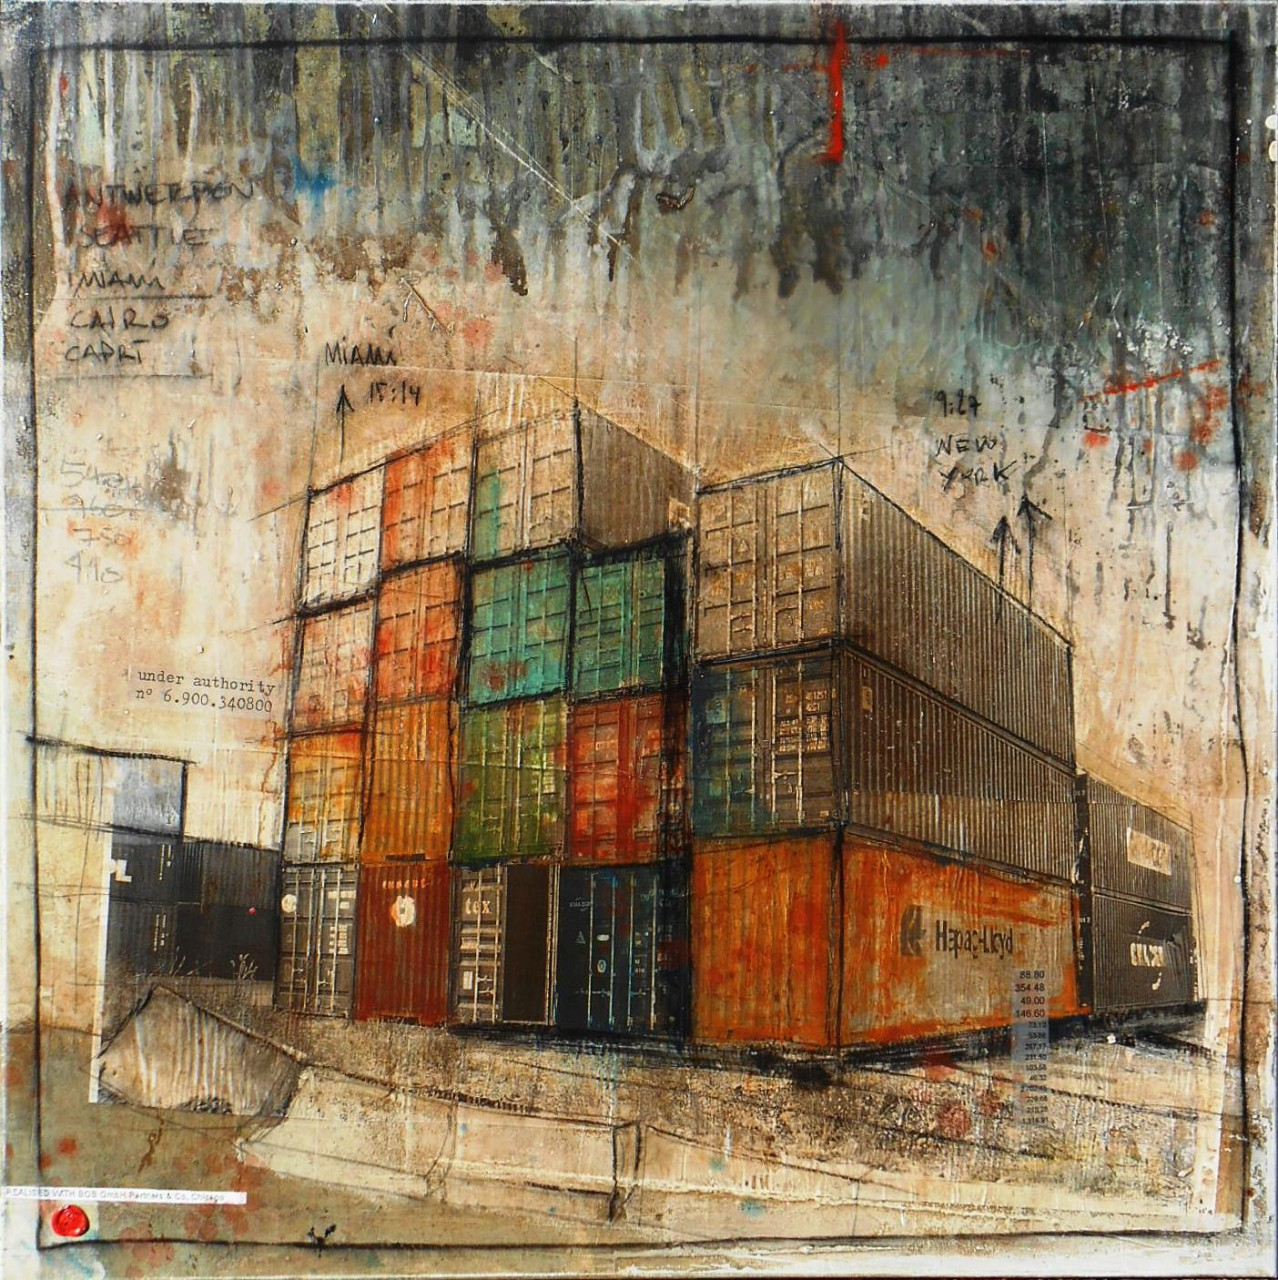 Made in China - collage photo, huile, acrylique sur toile 90 x 90 cm - 2014